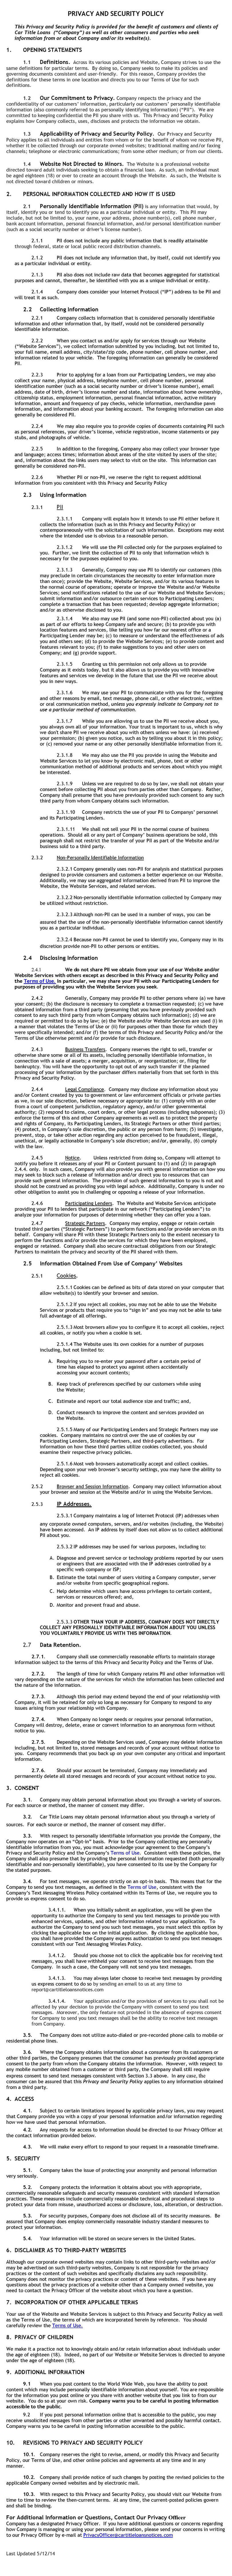 privacy-policy-1